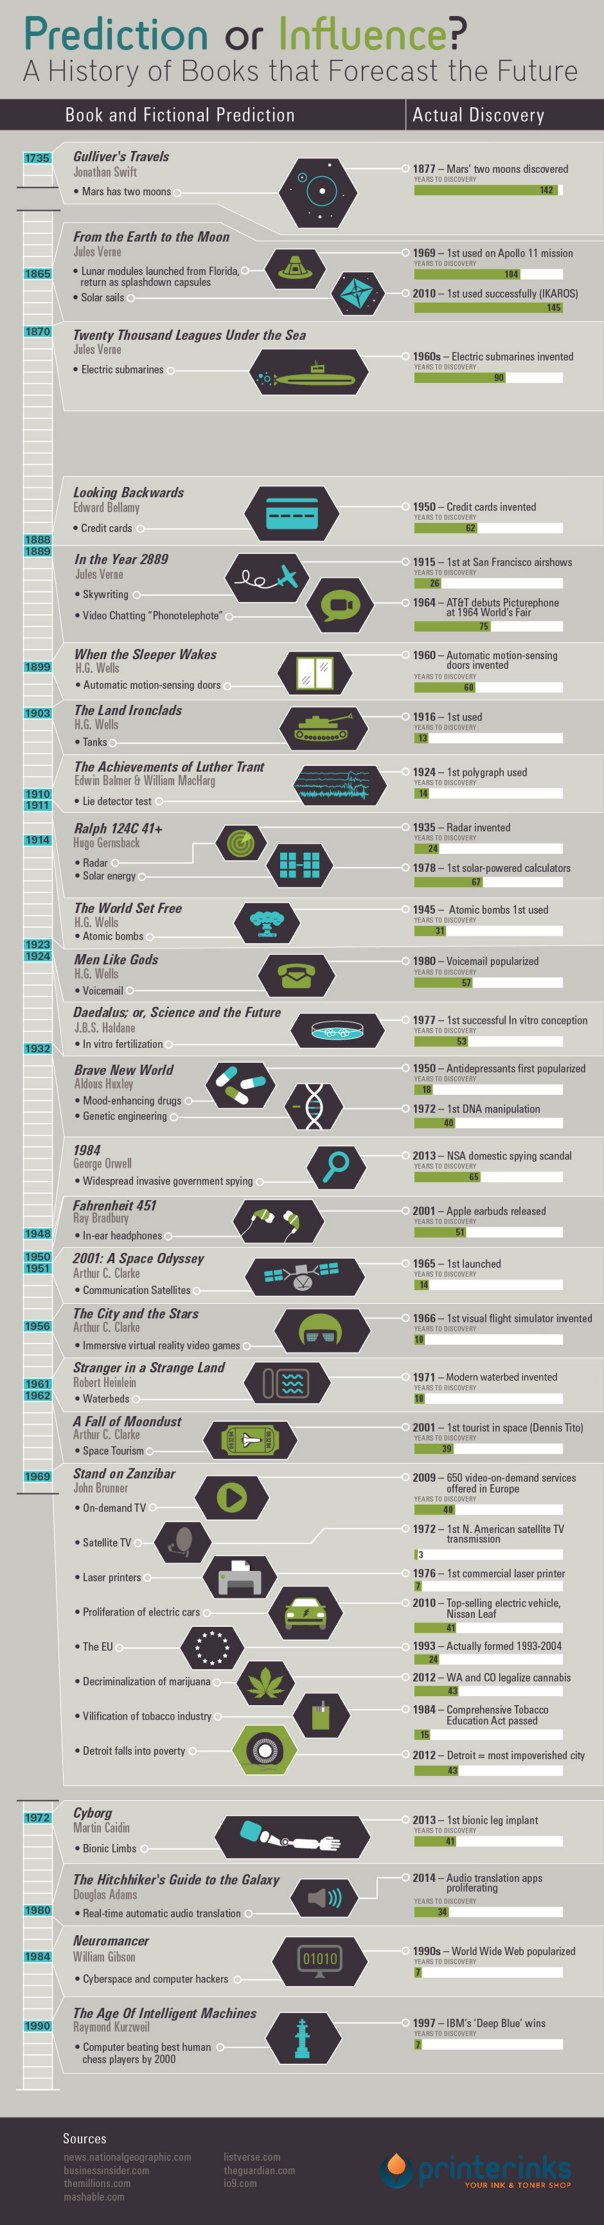 24-books-that-predicted-the-future-infographic